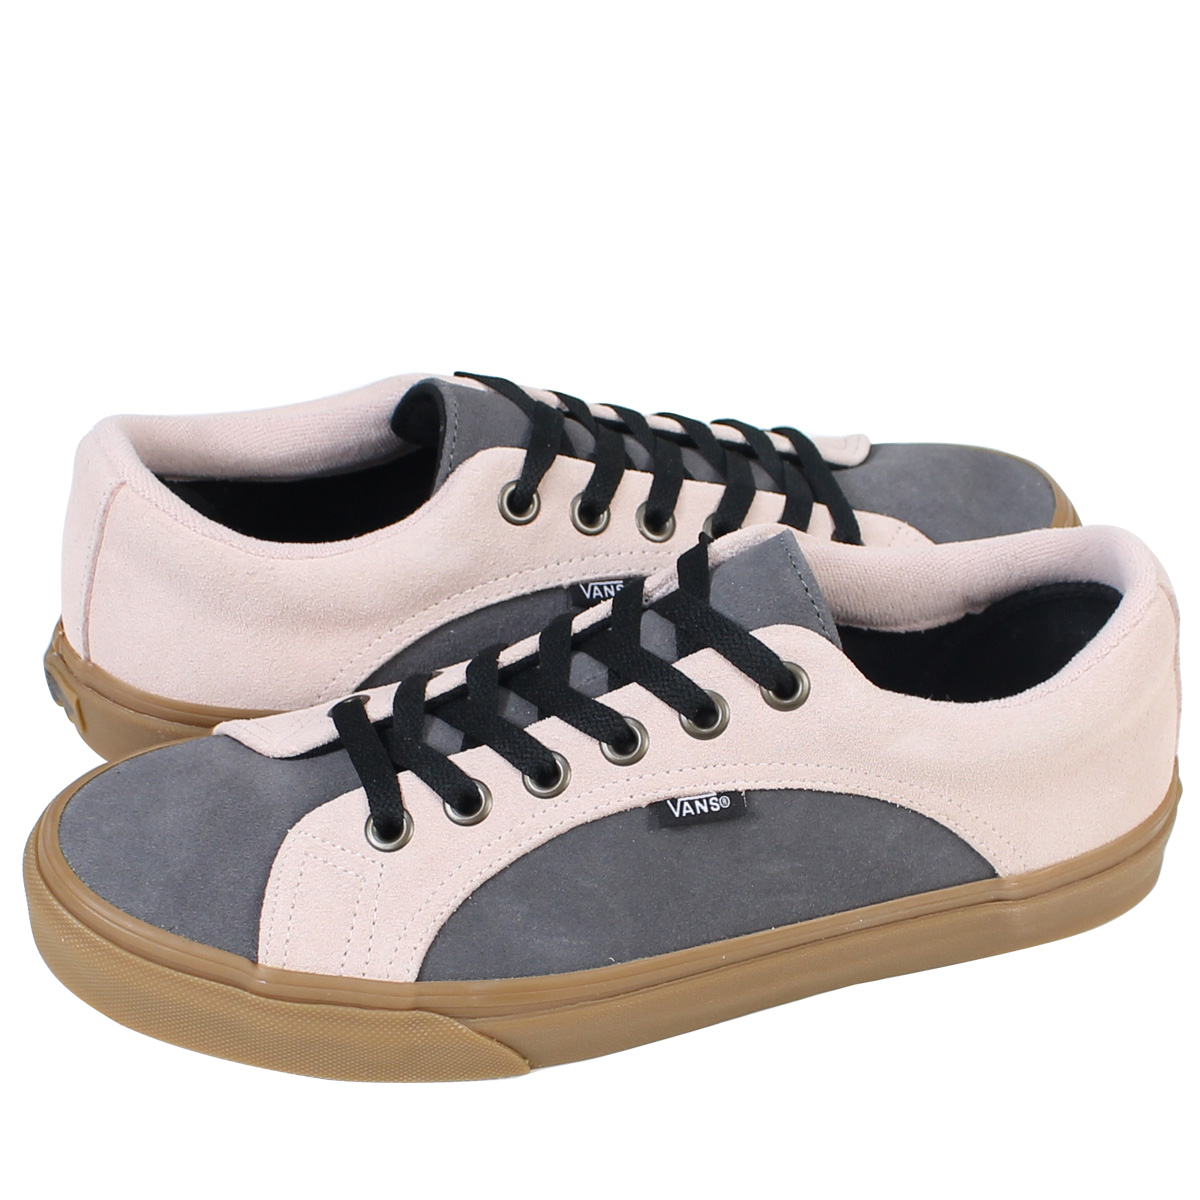 74dbebd1da09f4 VANS LAMPIN VN0A38FIOIO orchid pin sneakers men vans station wagons shoes  pink [9/26 ...